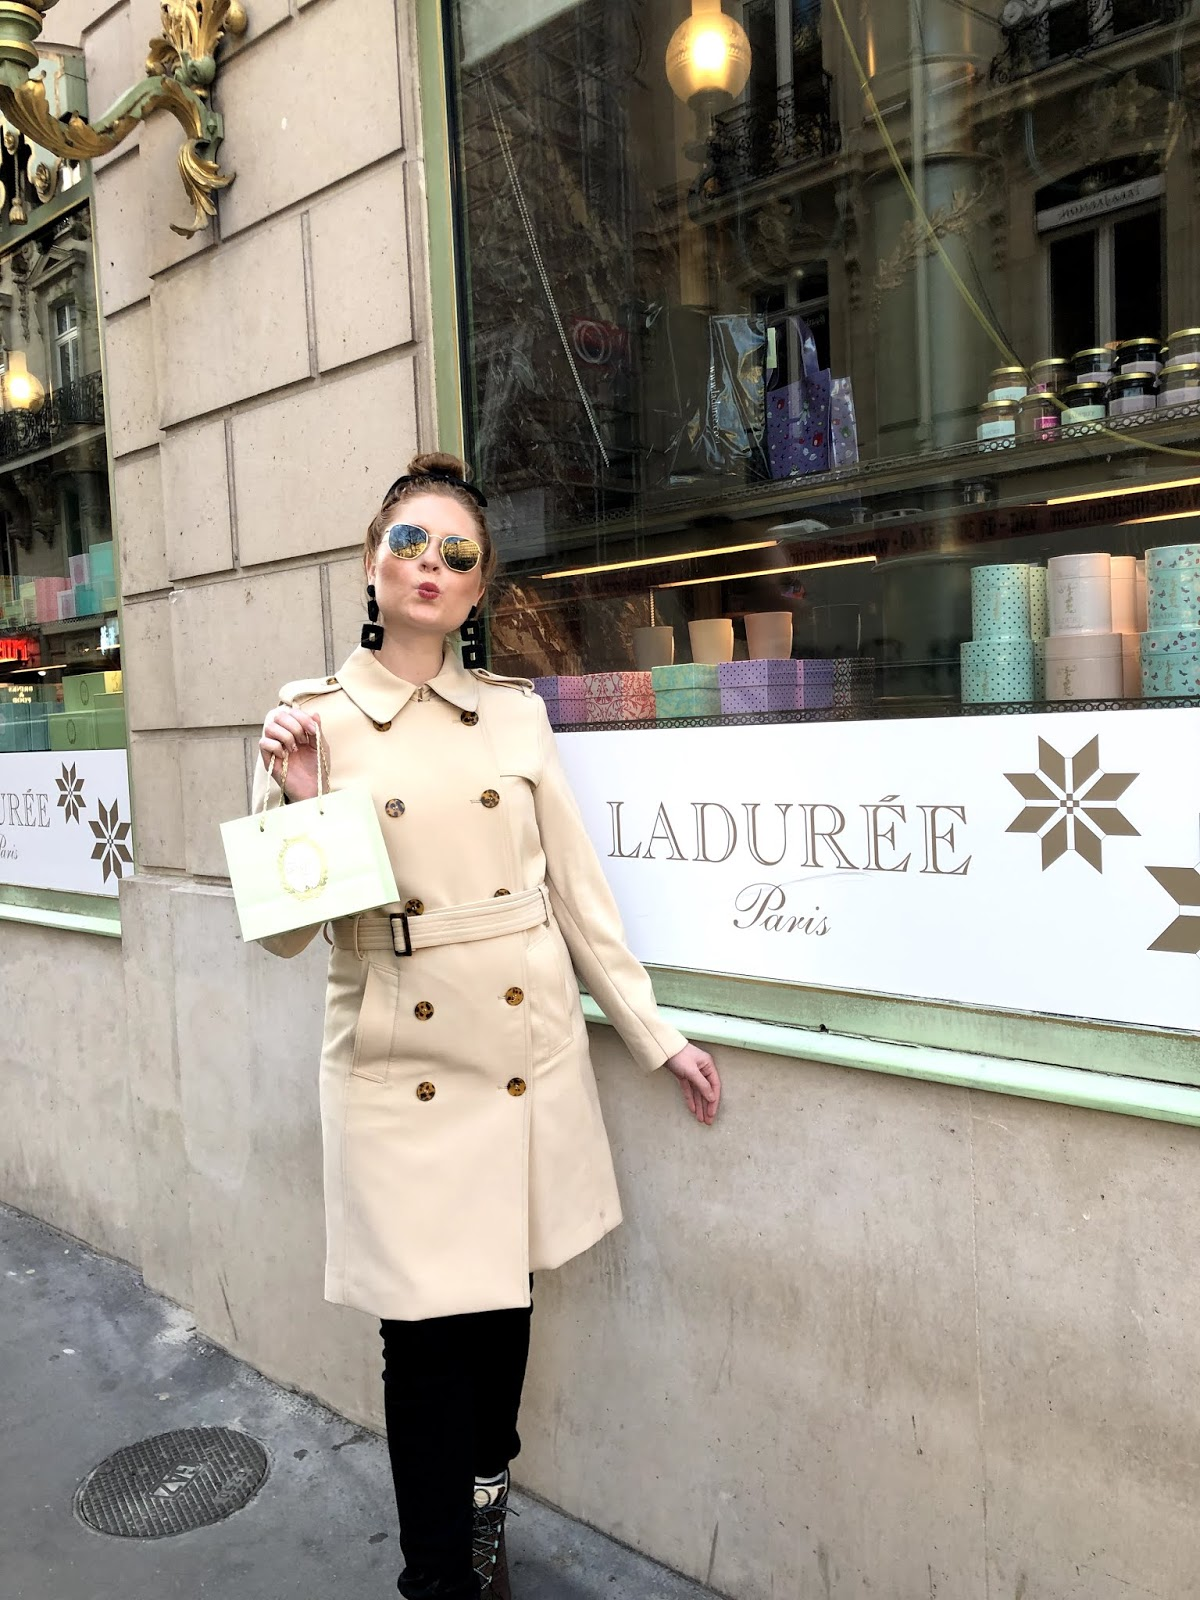 tampa blogger amanda burrows of affordable by amanda wears a tan trench coat while snacking on macaroons from laduree in paris, france.